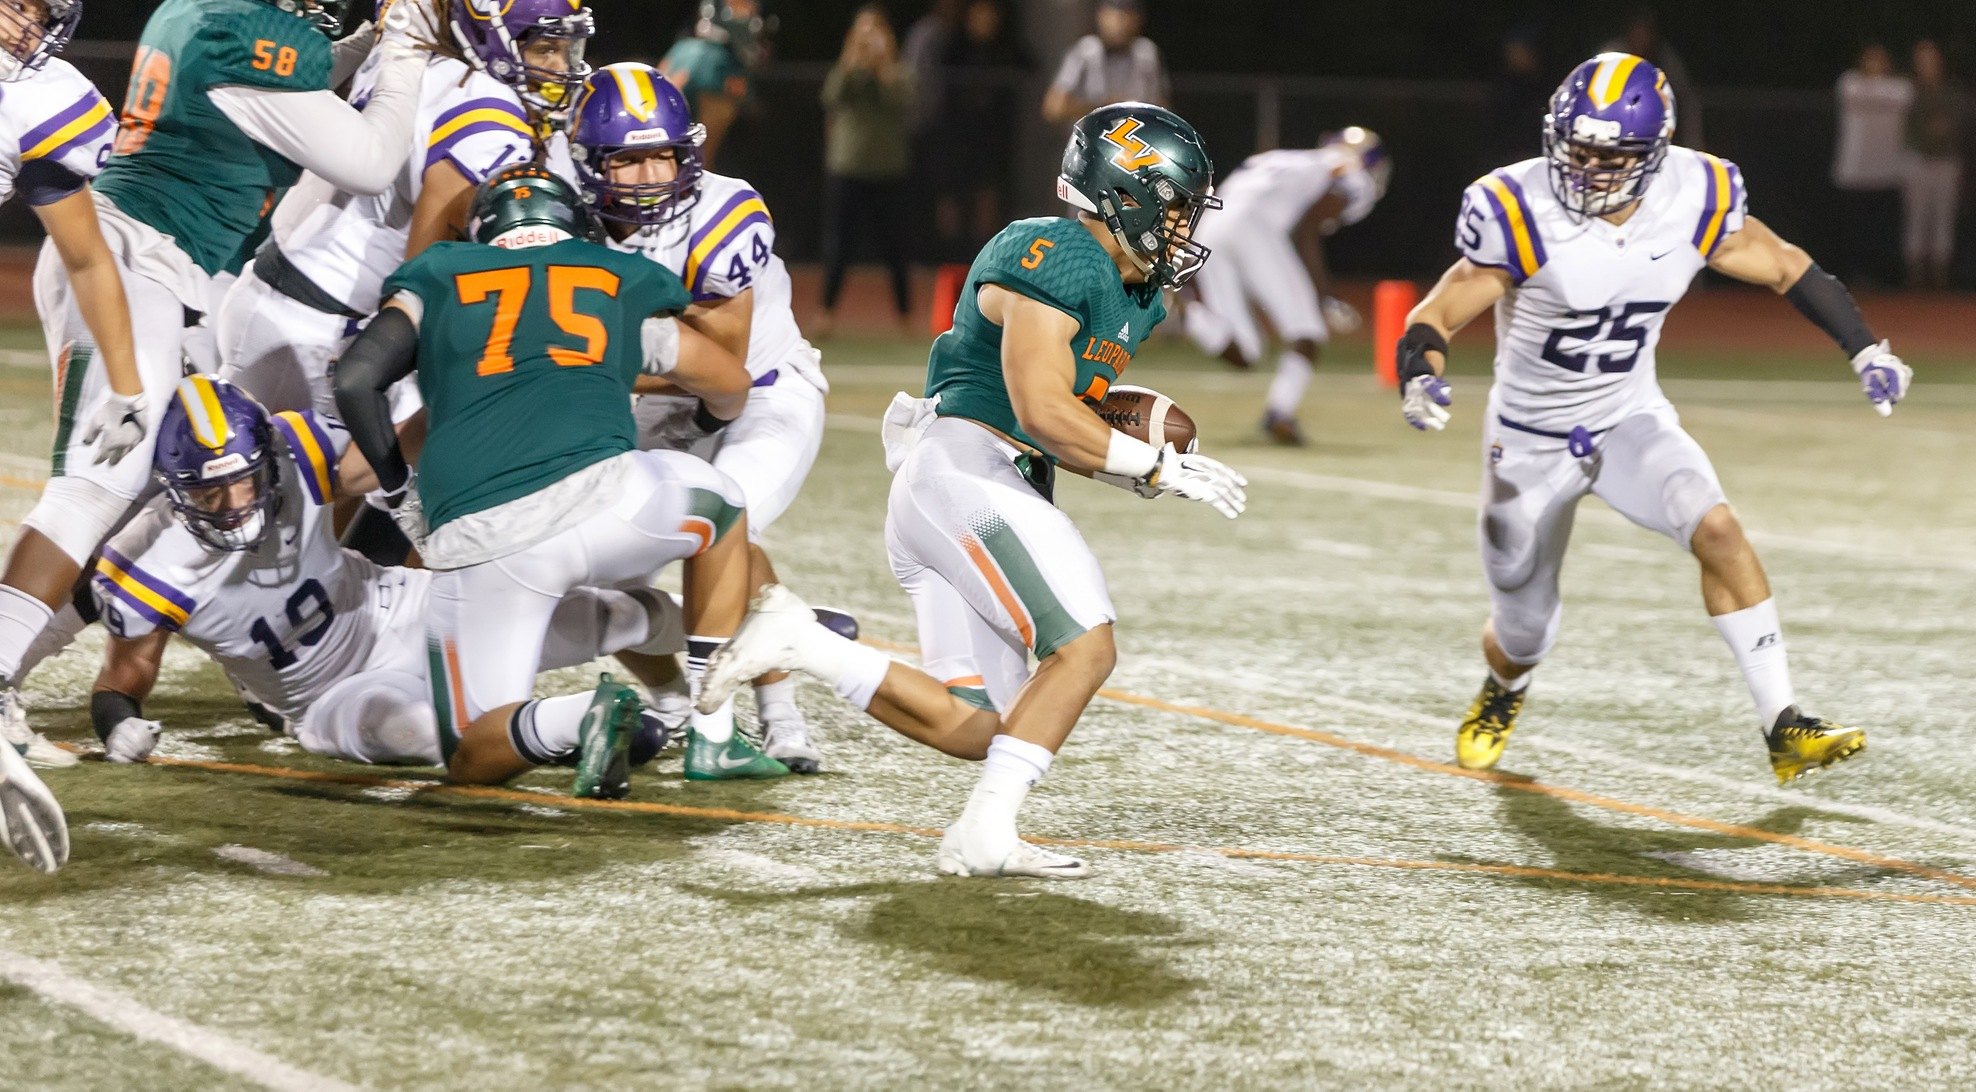 Stags edge Leopards on Homecoming